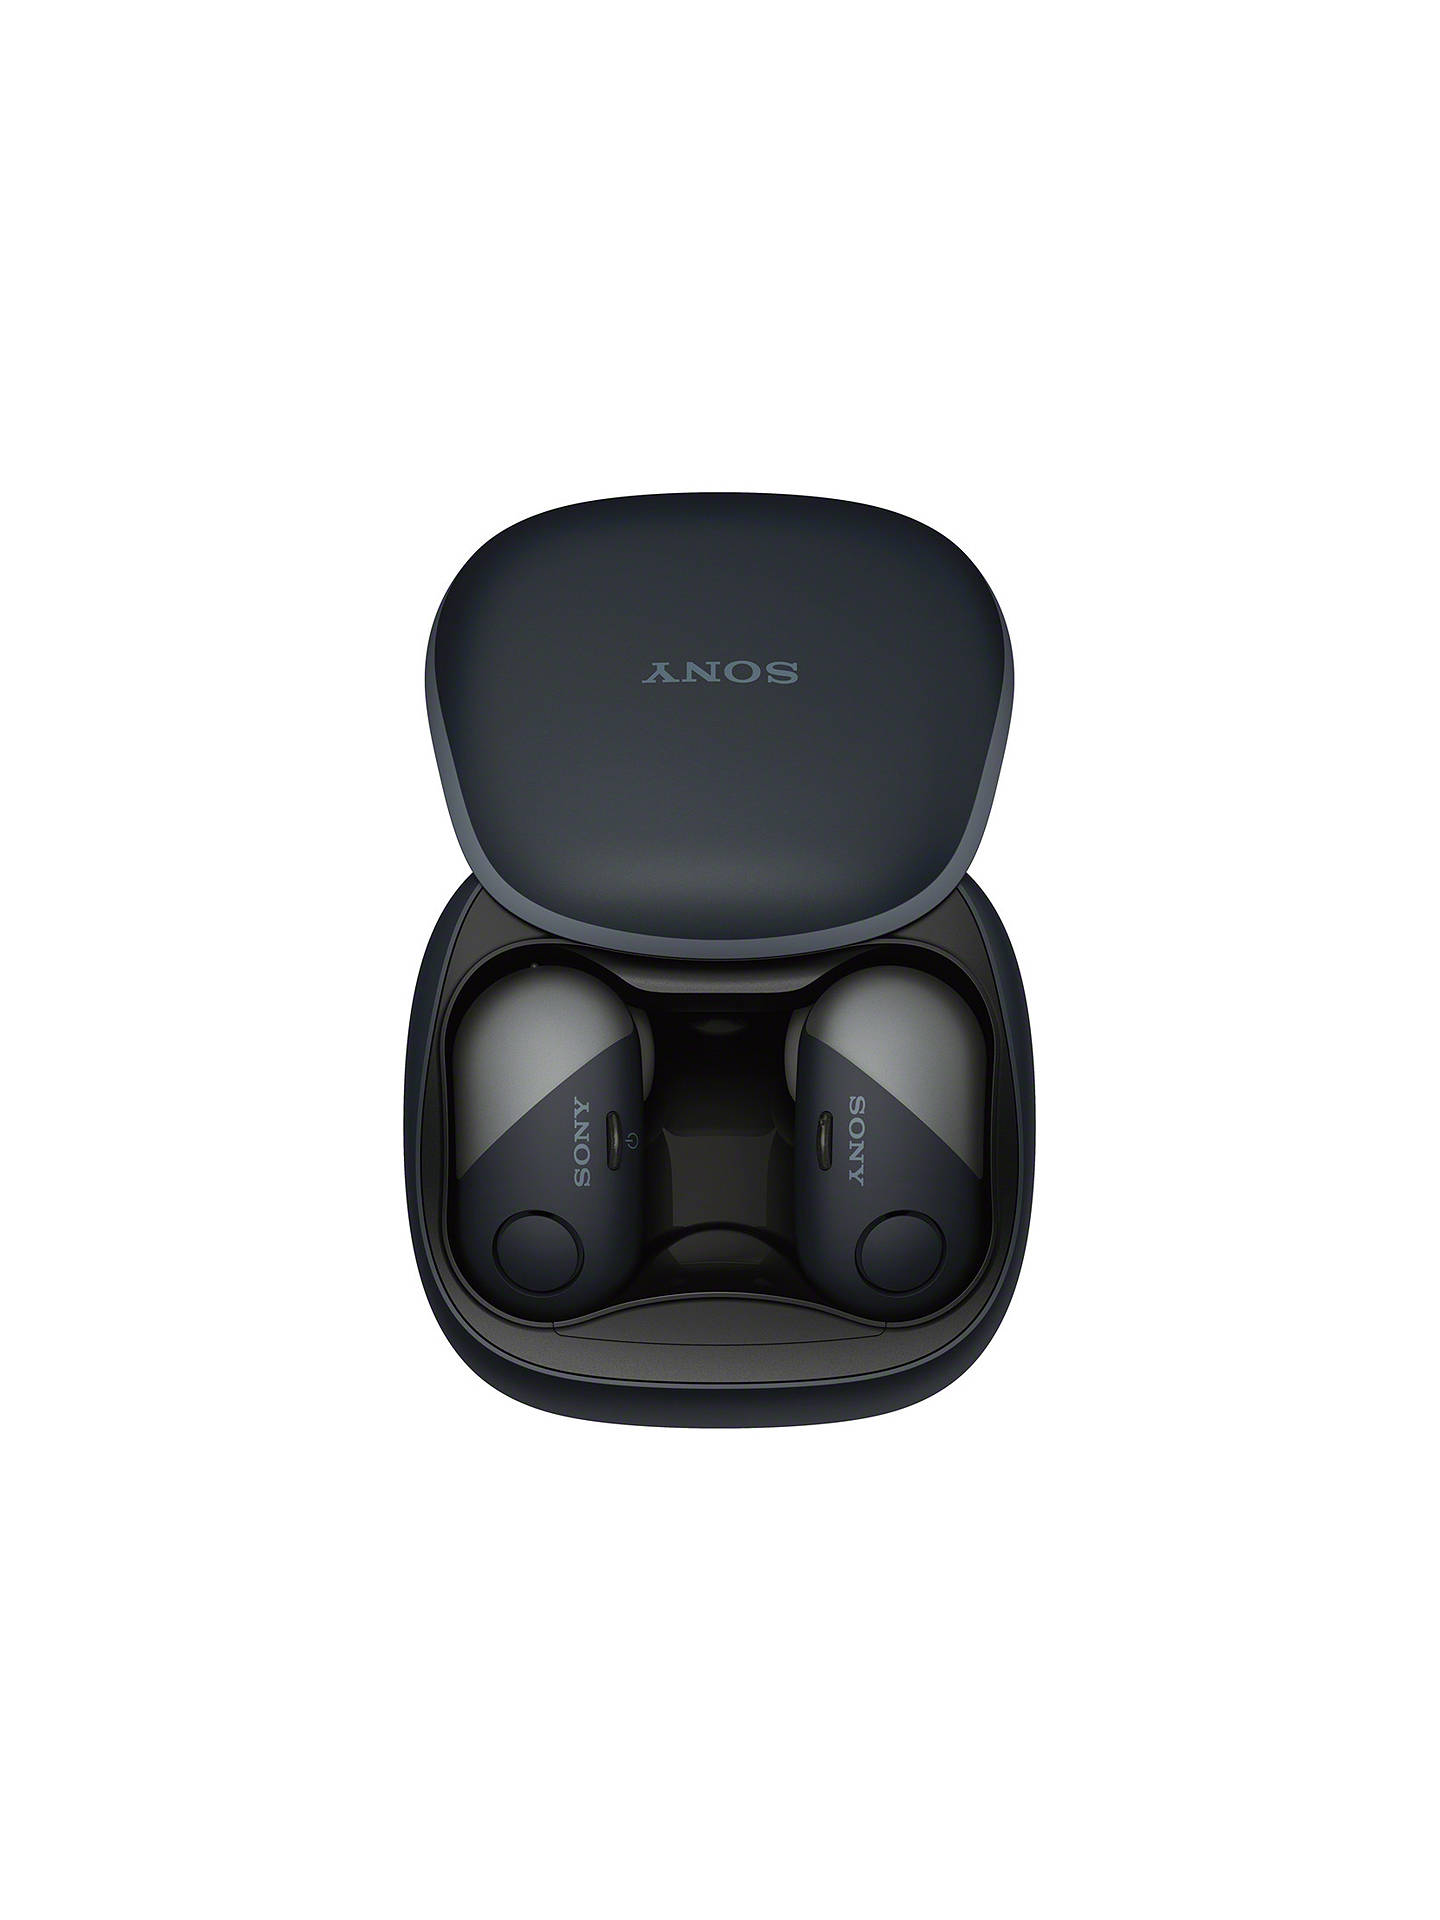 BuySony WF-SP700N Noise Cancelling True Wireless Bluetooth NFC Splash Resistant Sports In-Ear Headphones with Mic/Remote, Black Online at johnlewis.com